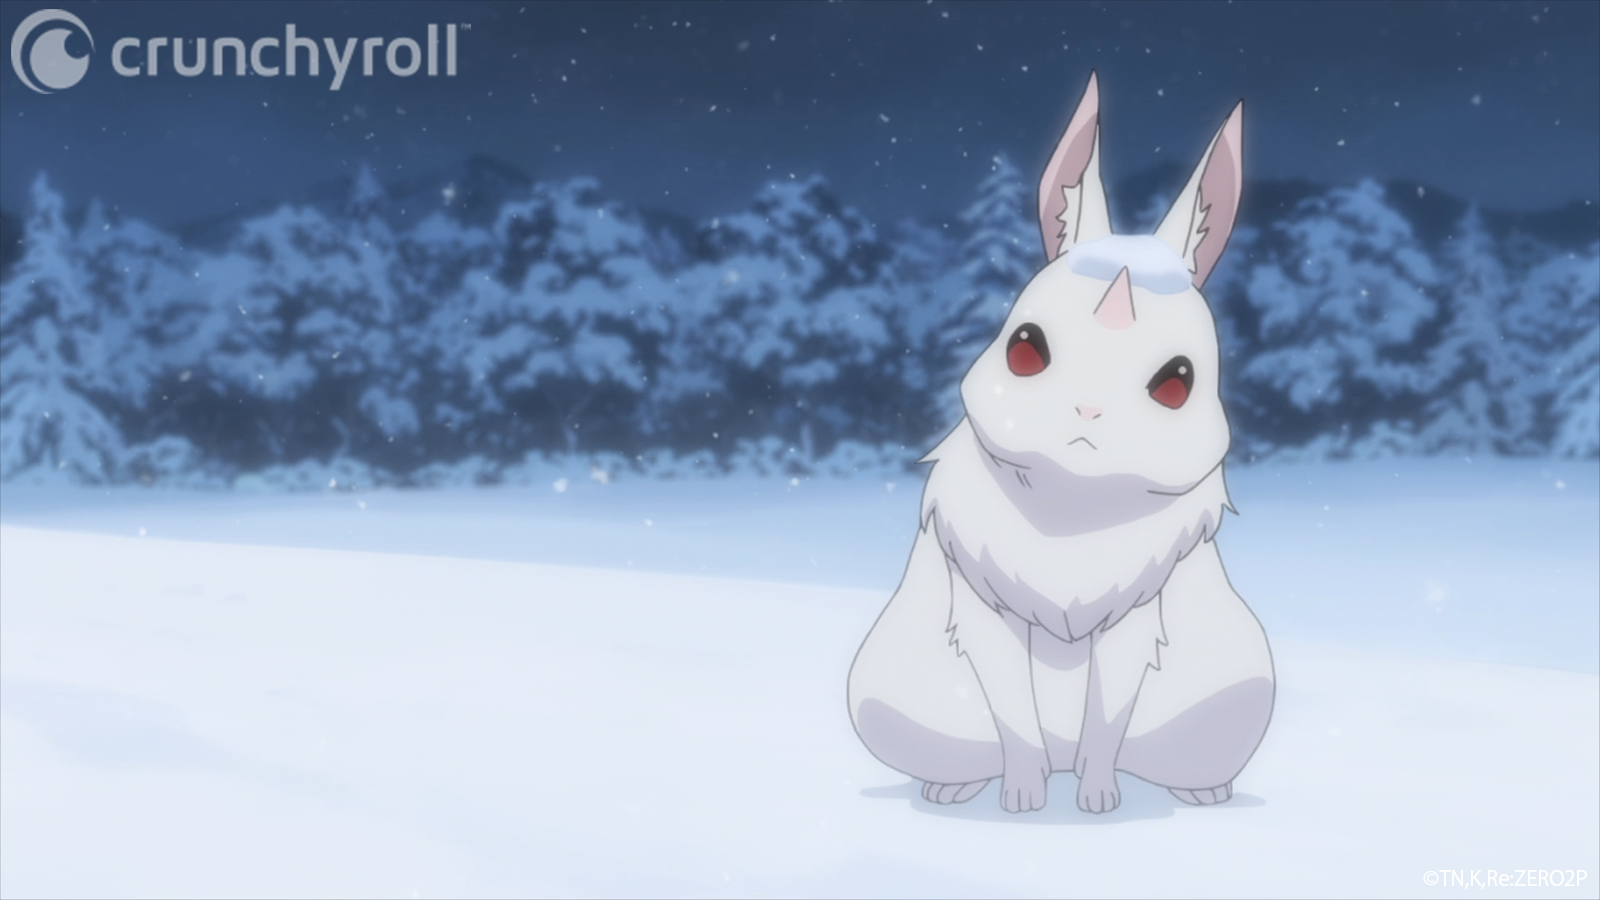 The Great Rabbit appears to be a harmless little bunny with a horn growing out of its forehead in a scene from Episode 33 of Re:ZERO -Starting Life in Another World-.